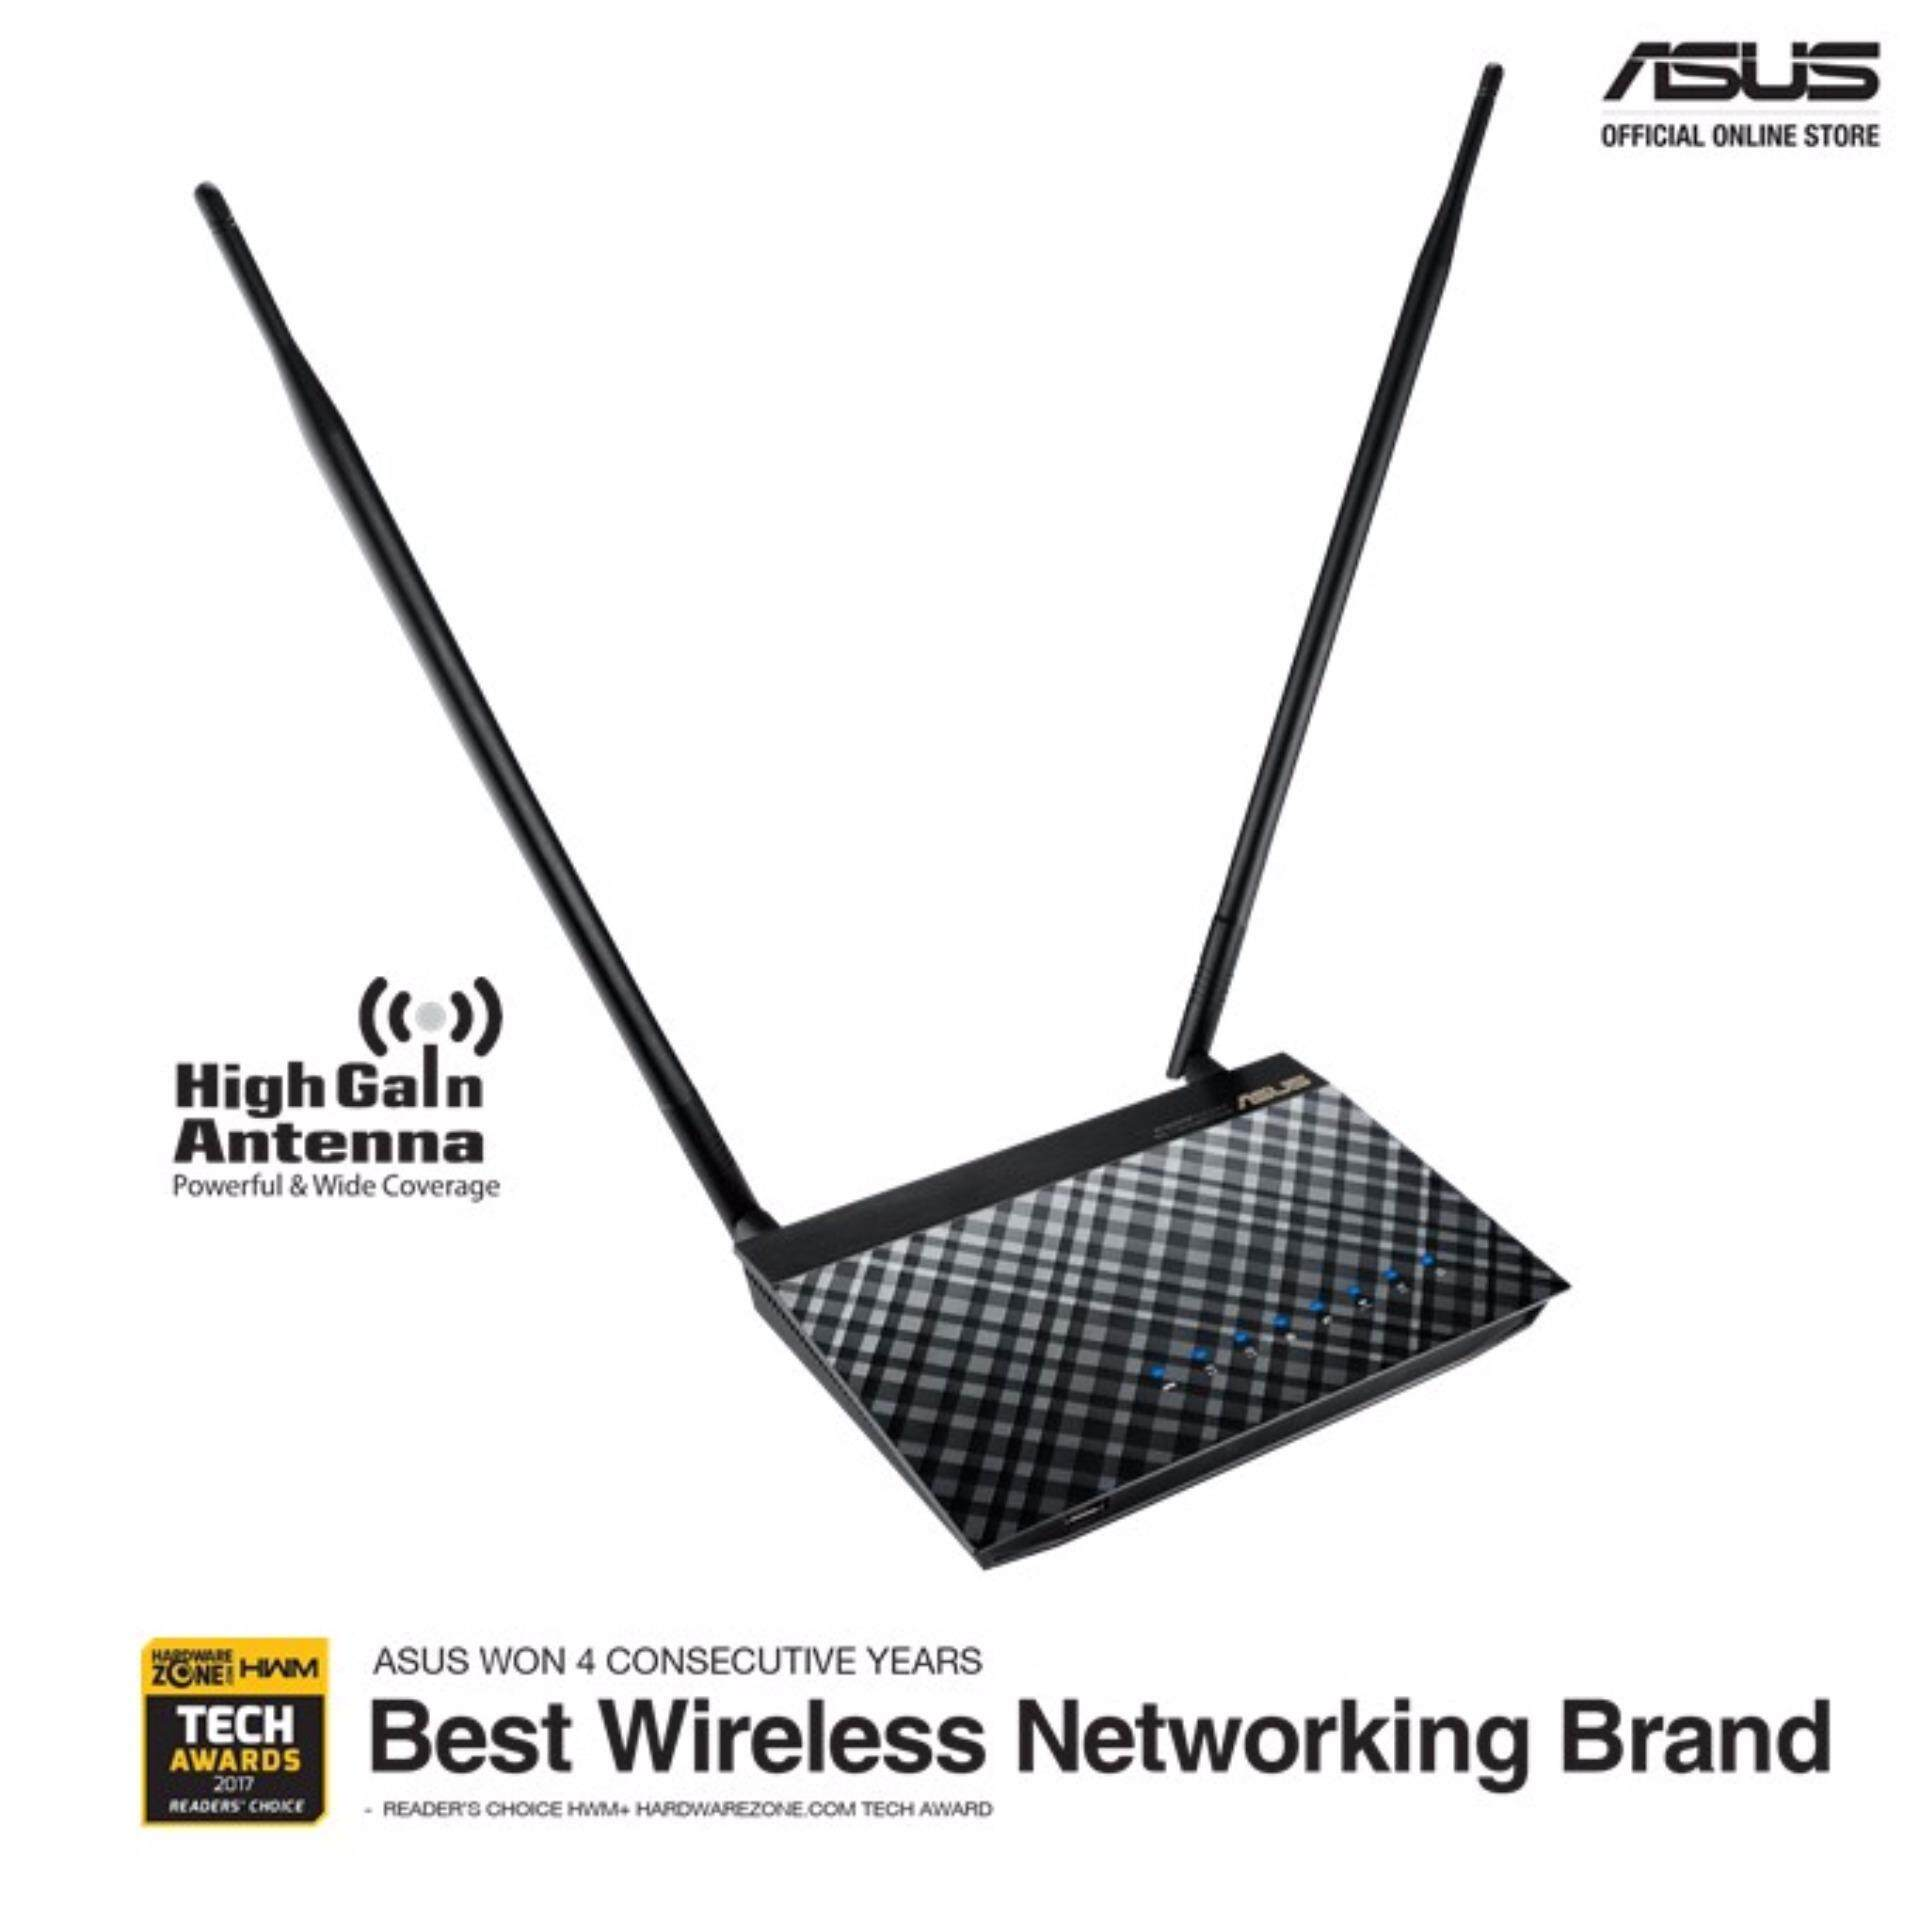 Routers Reviews Ratings And Best Price In Kl Selangor Malaysia Asus Rt Ac55uhp Dual Band High Power Router Wireless Ac 1200 Mbps Ac1200 Wi Fi Gigabit